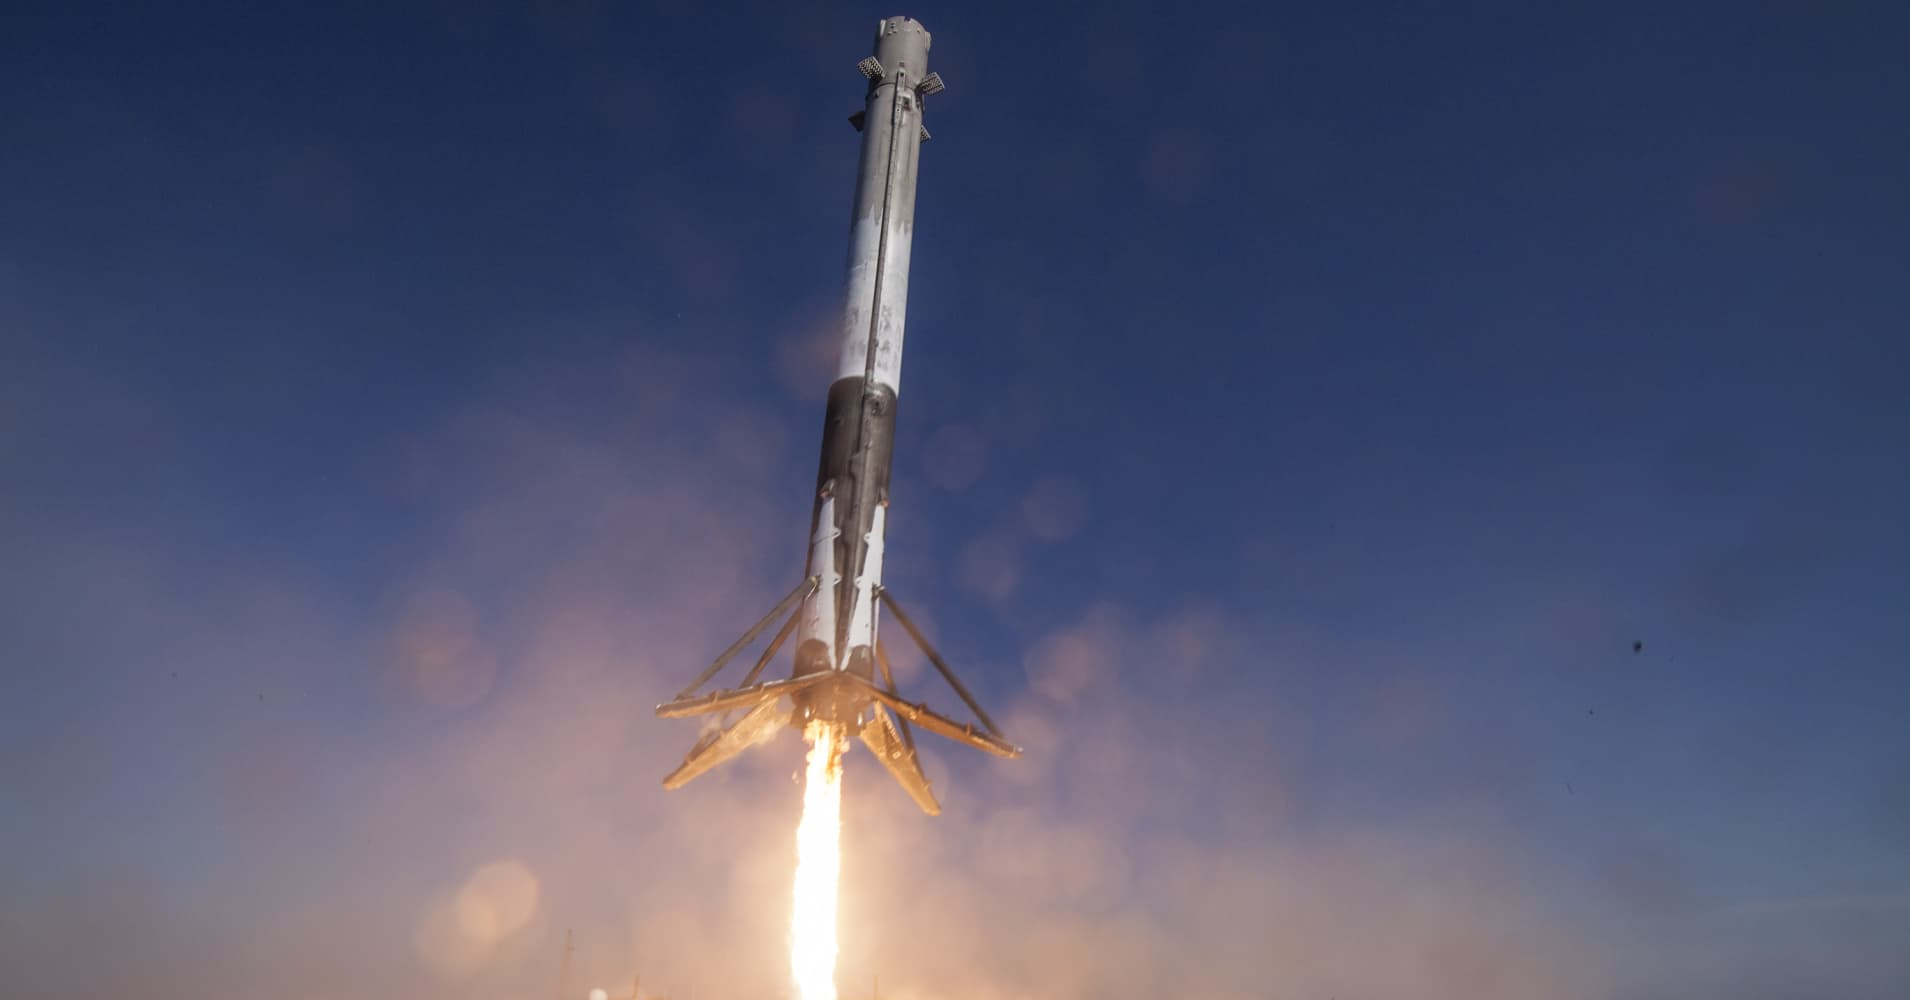 Despite 'extreme weather,' SpaceX completes back-to-back Falcon 9 missions